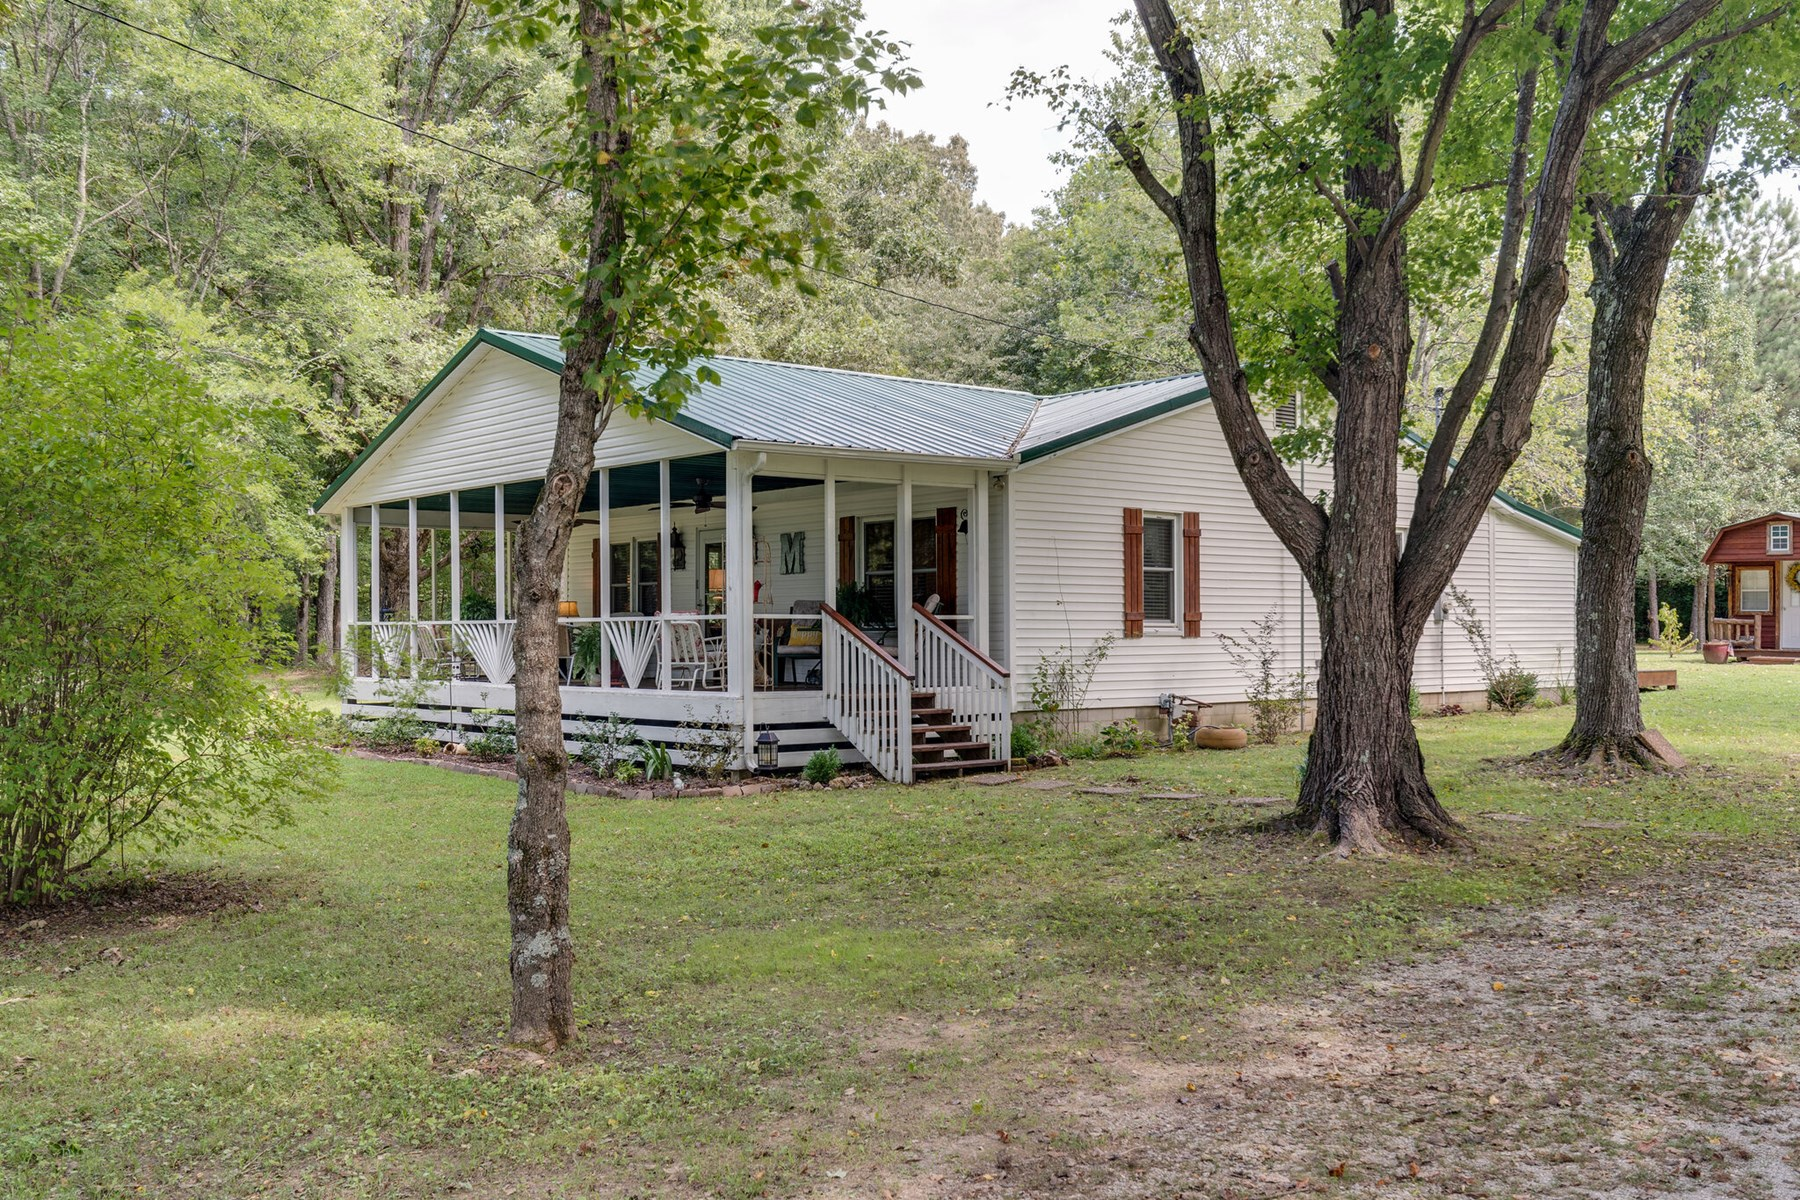 Country Home with Acreage for Sale in Hohenwald, Tennessee